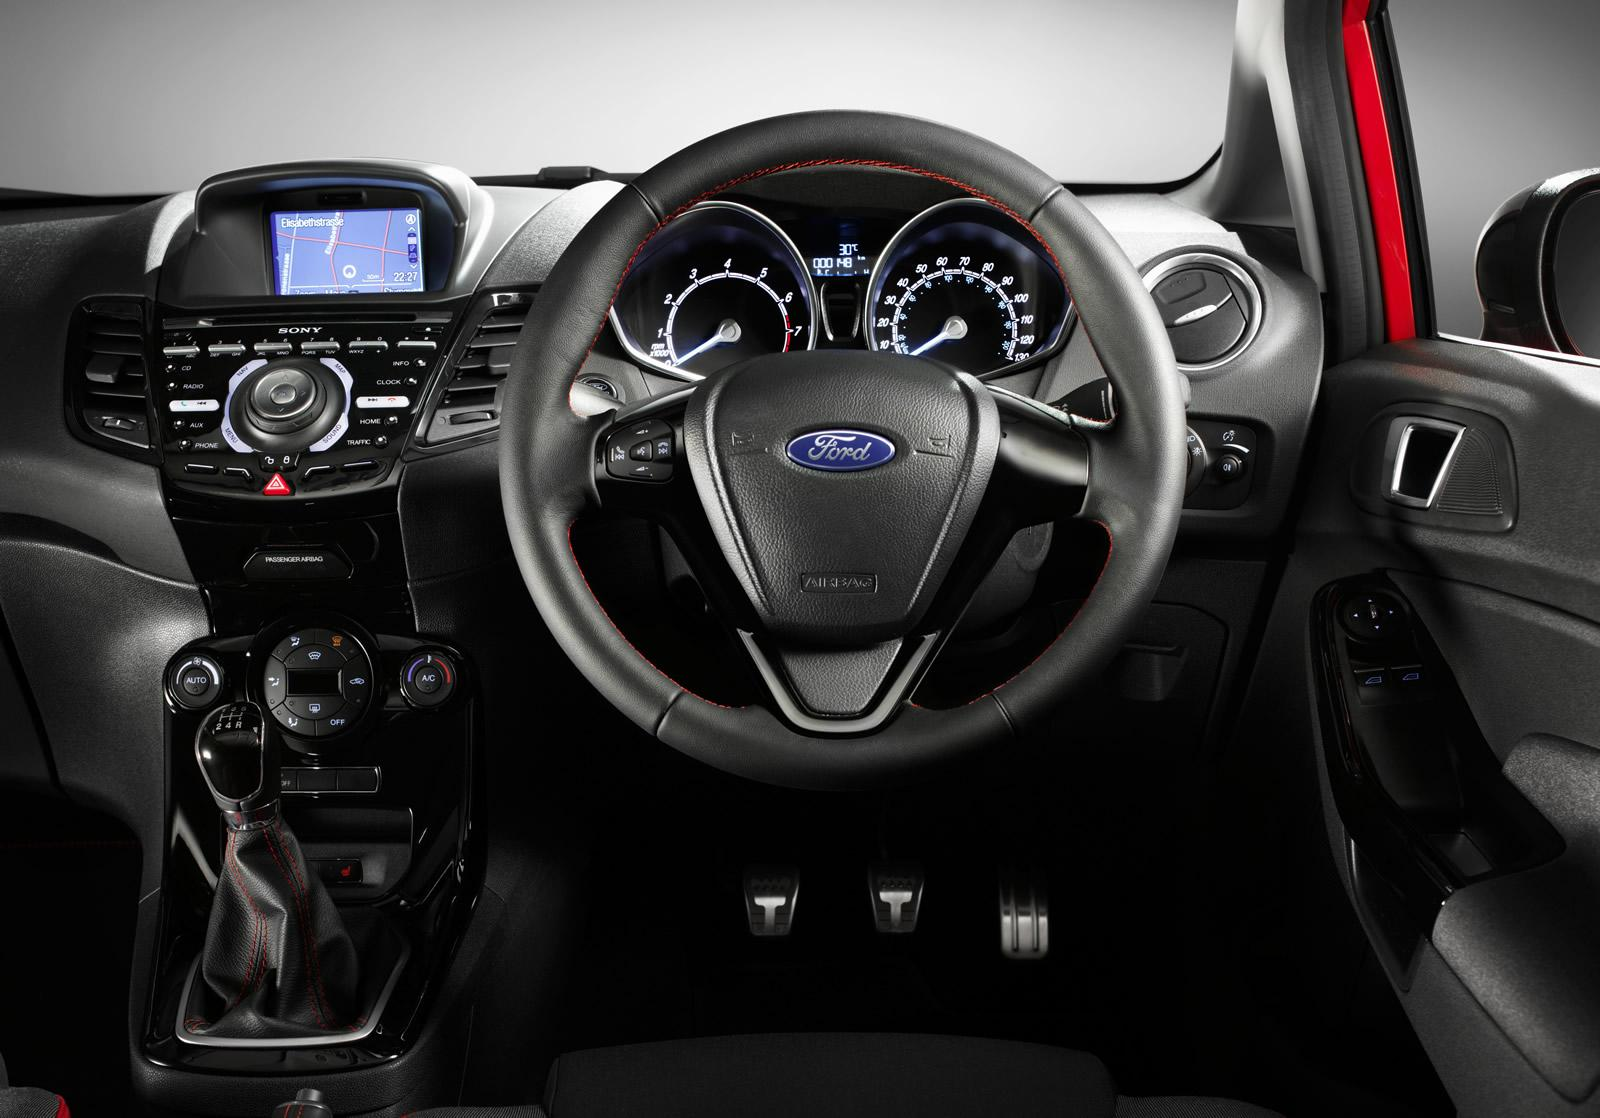 Ford Fiesta Red and Black Editions (6)